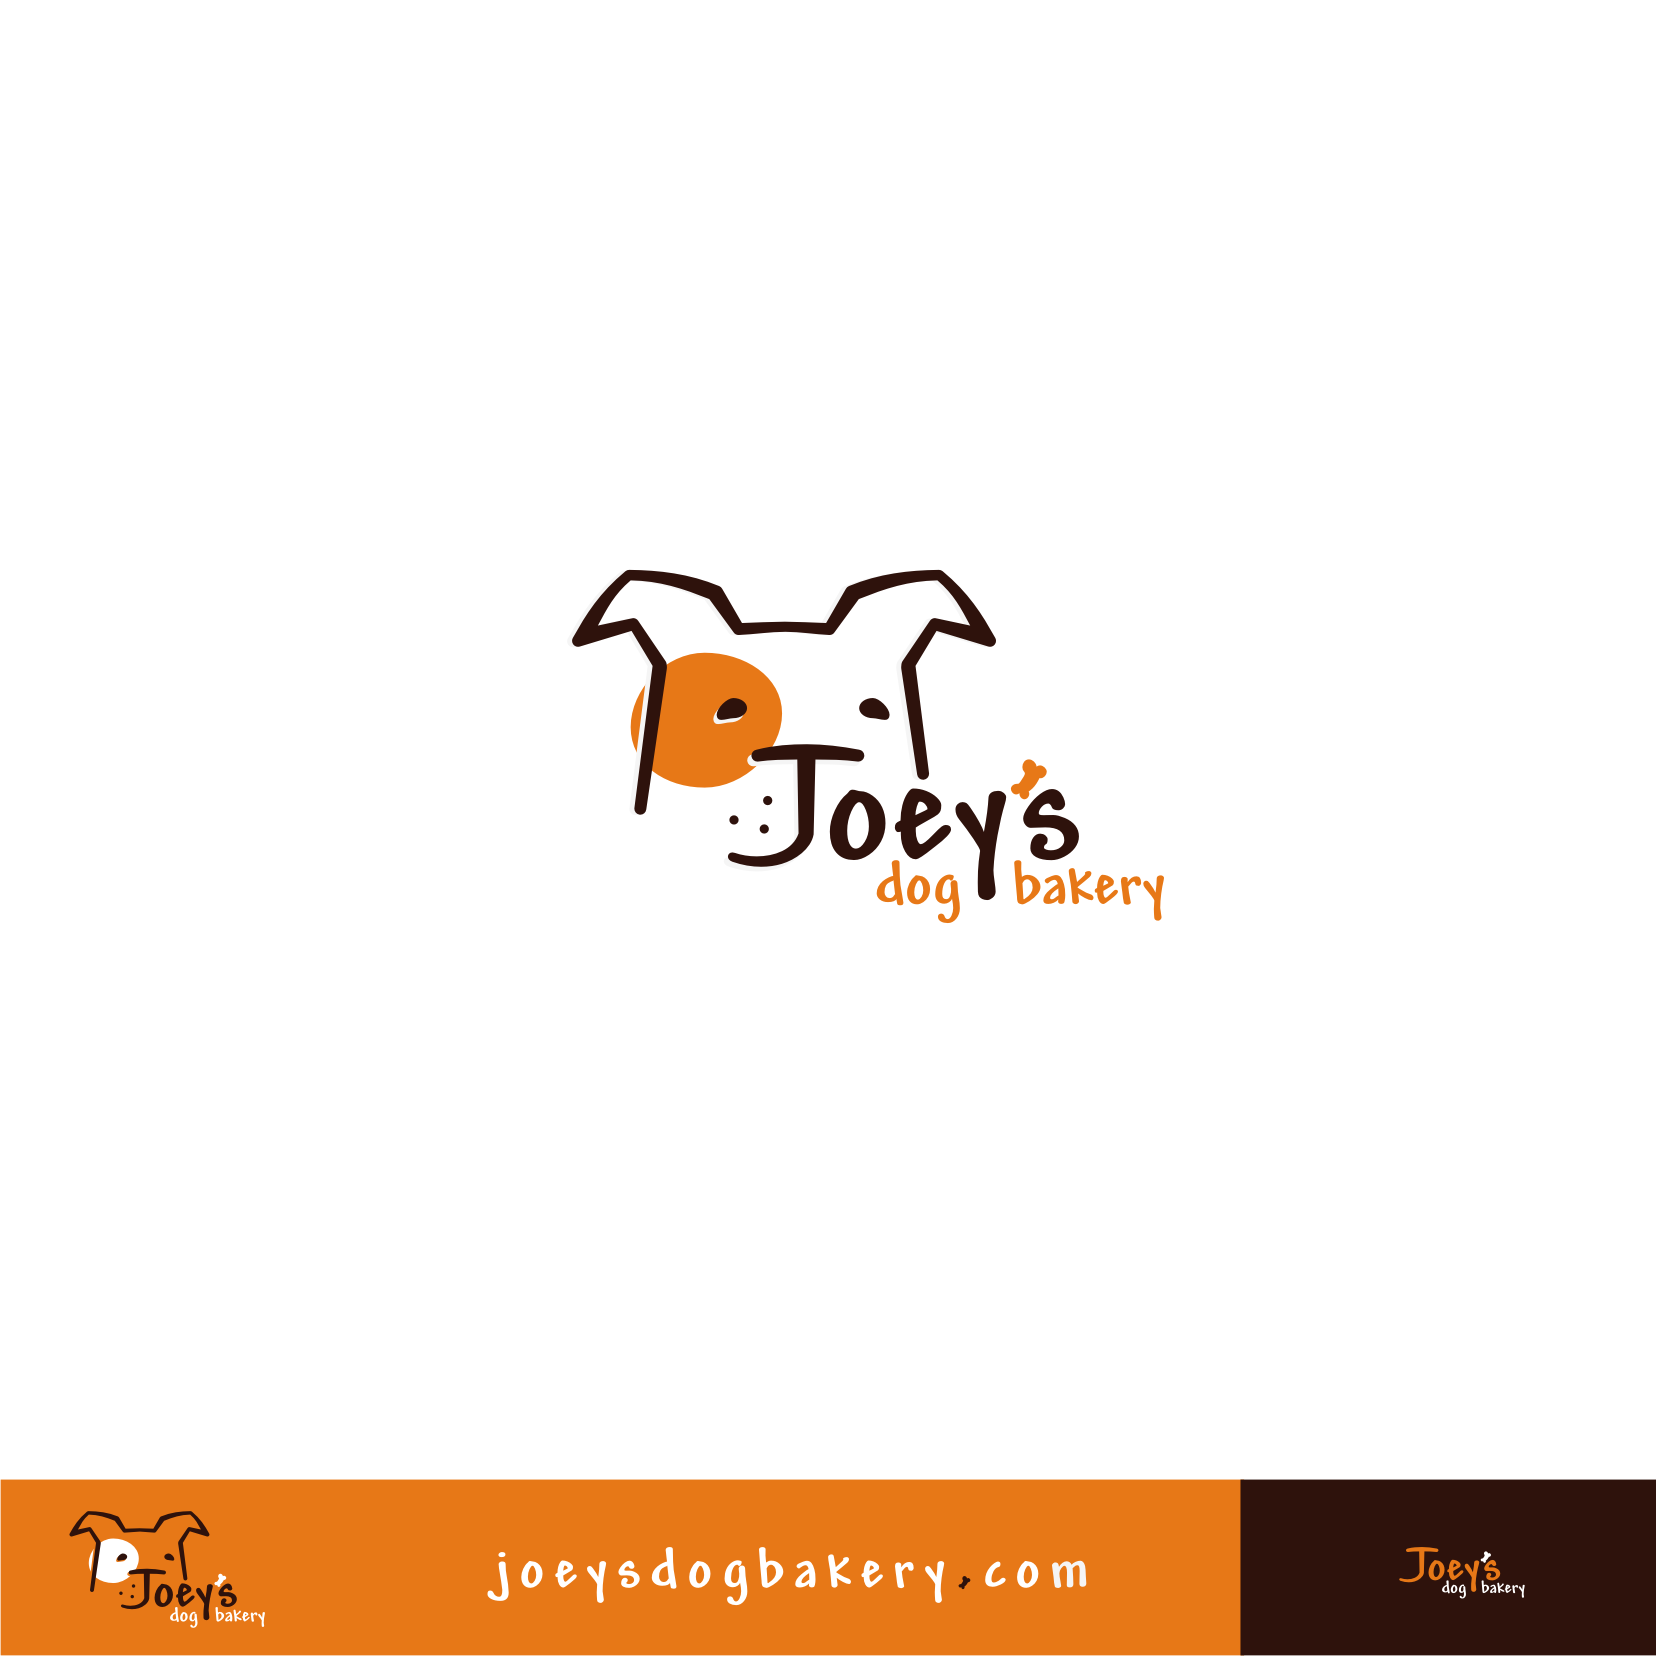 Create the next logo for Joey's Dog Bakery